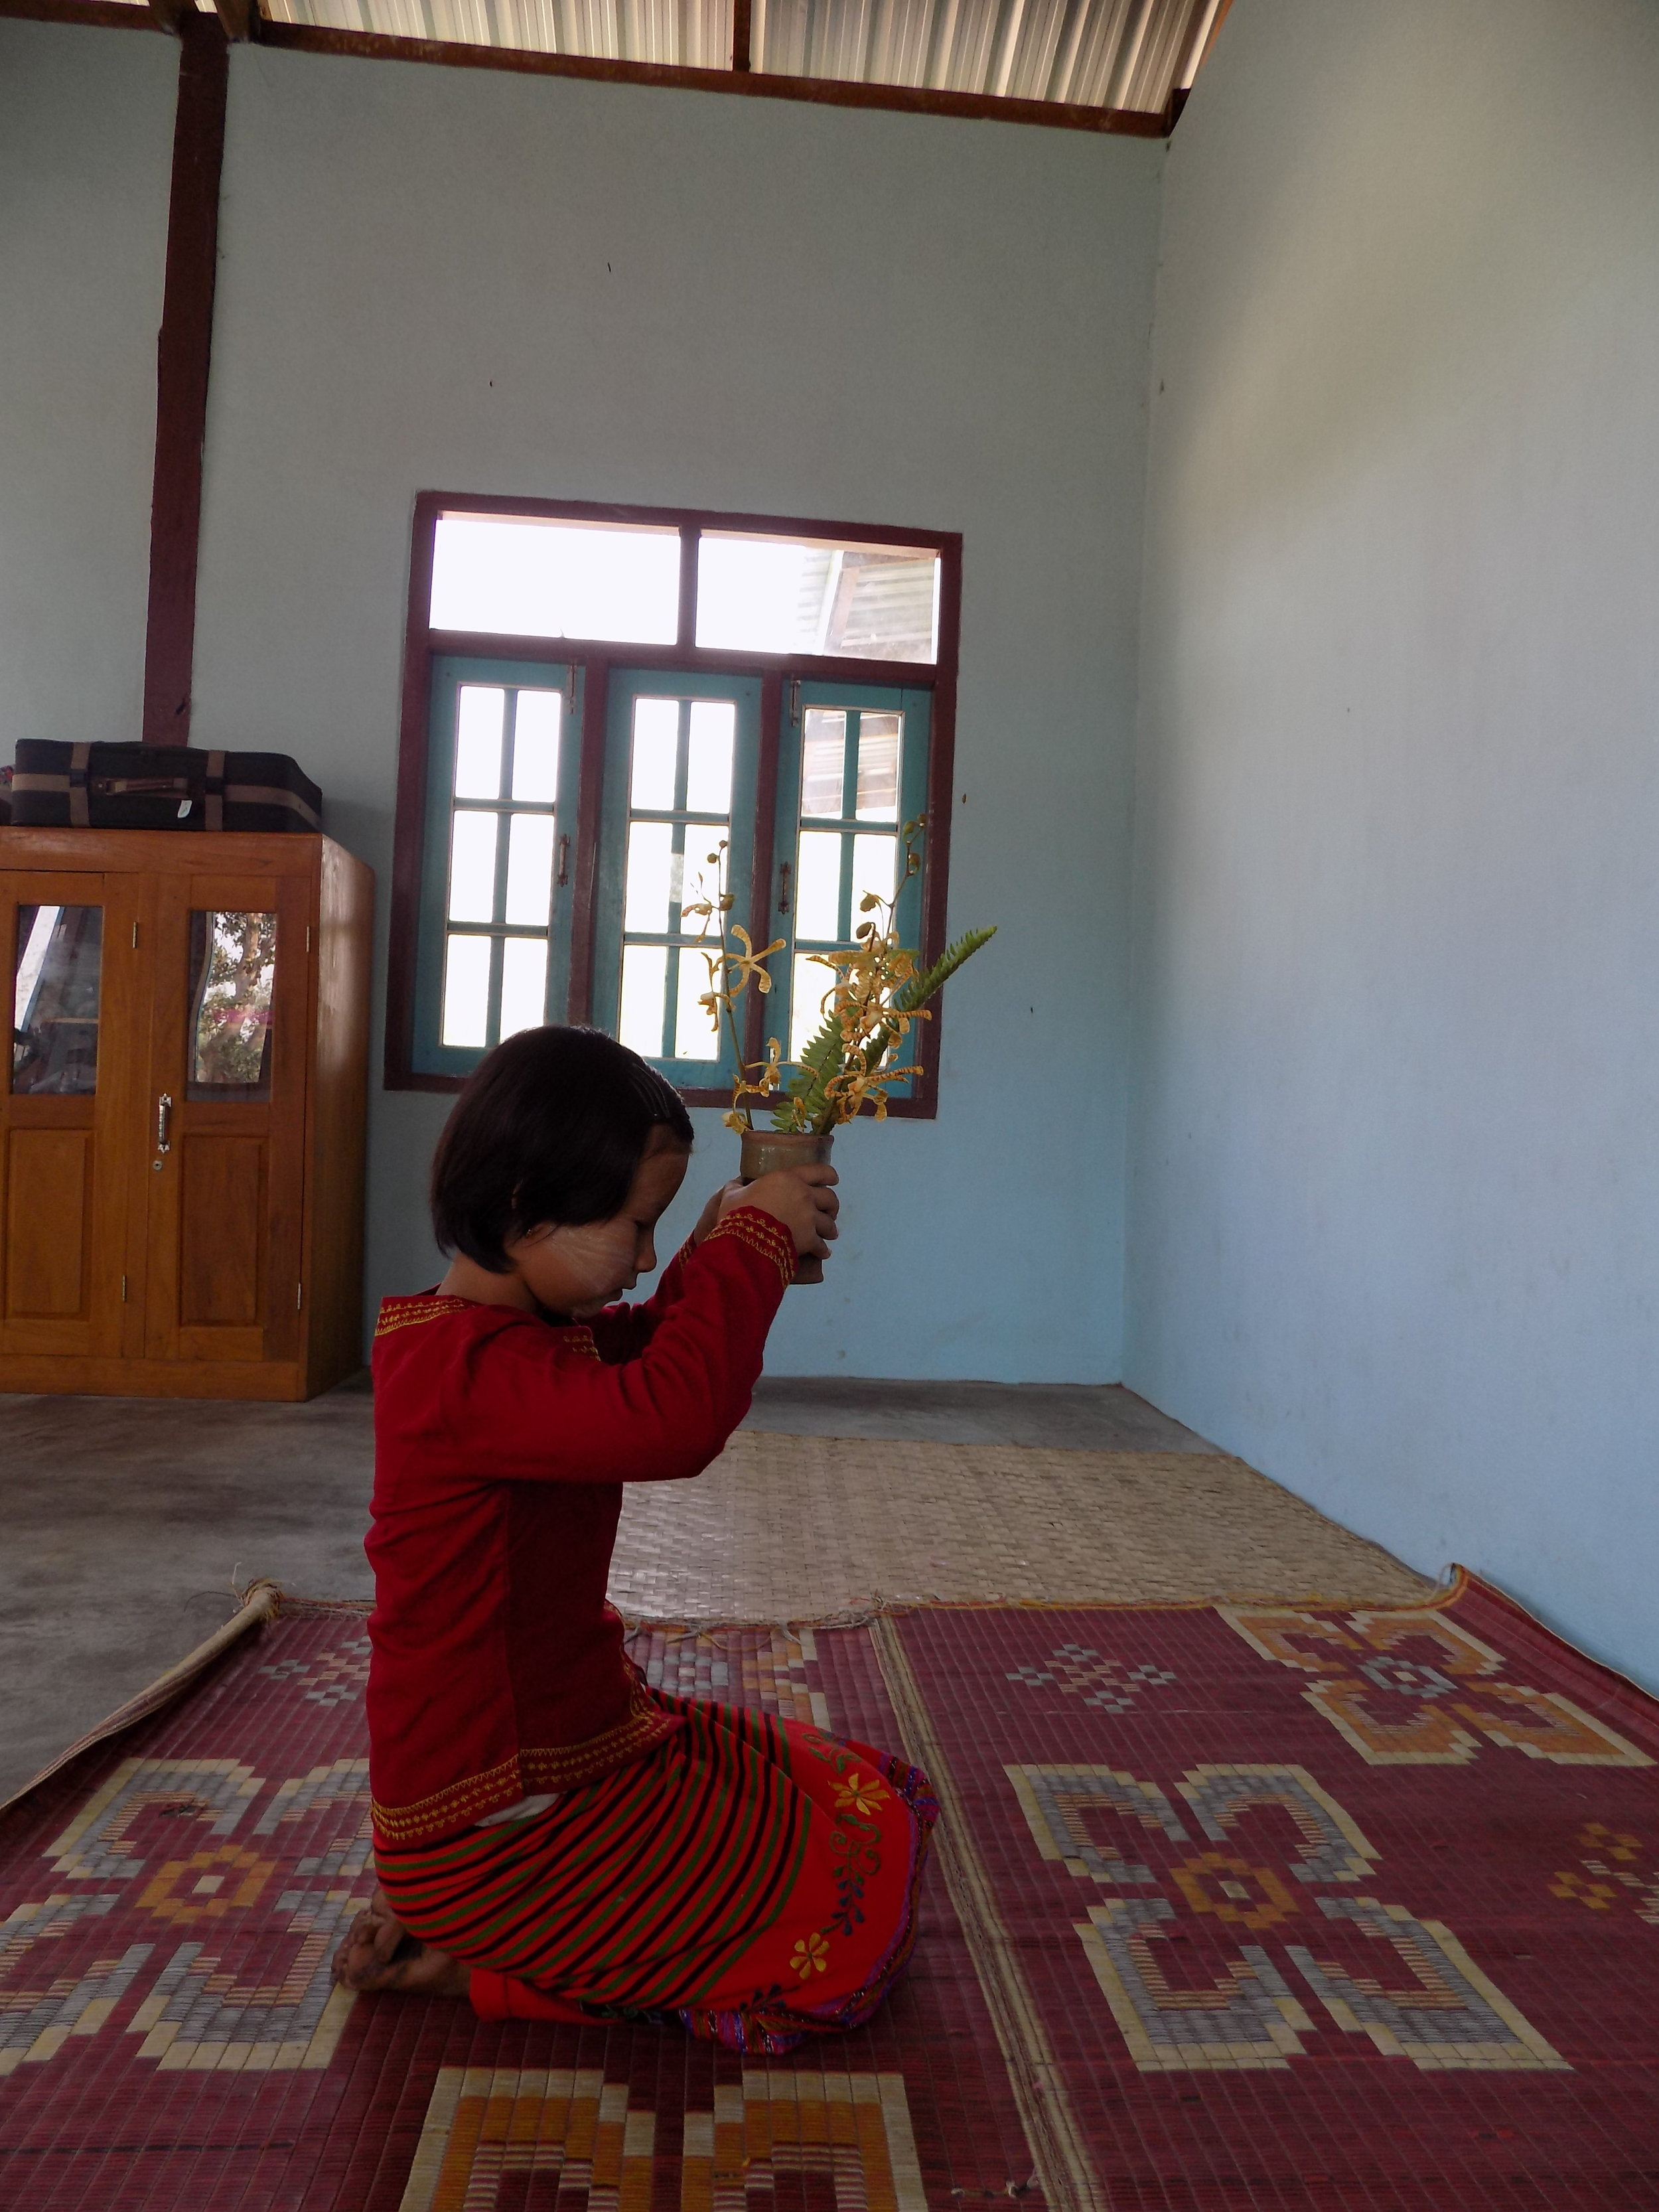 After she gets to school she performs her morning prayers.